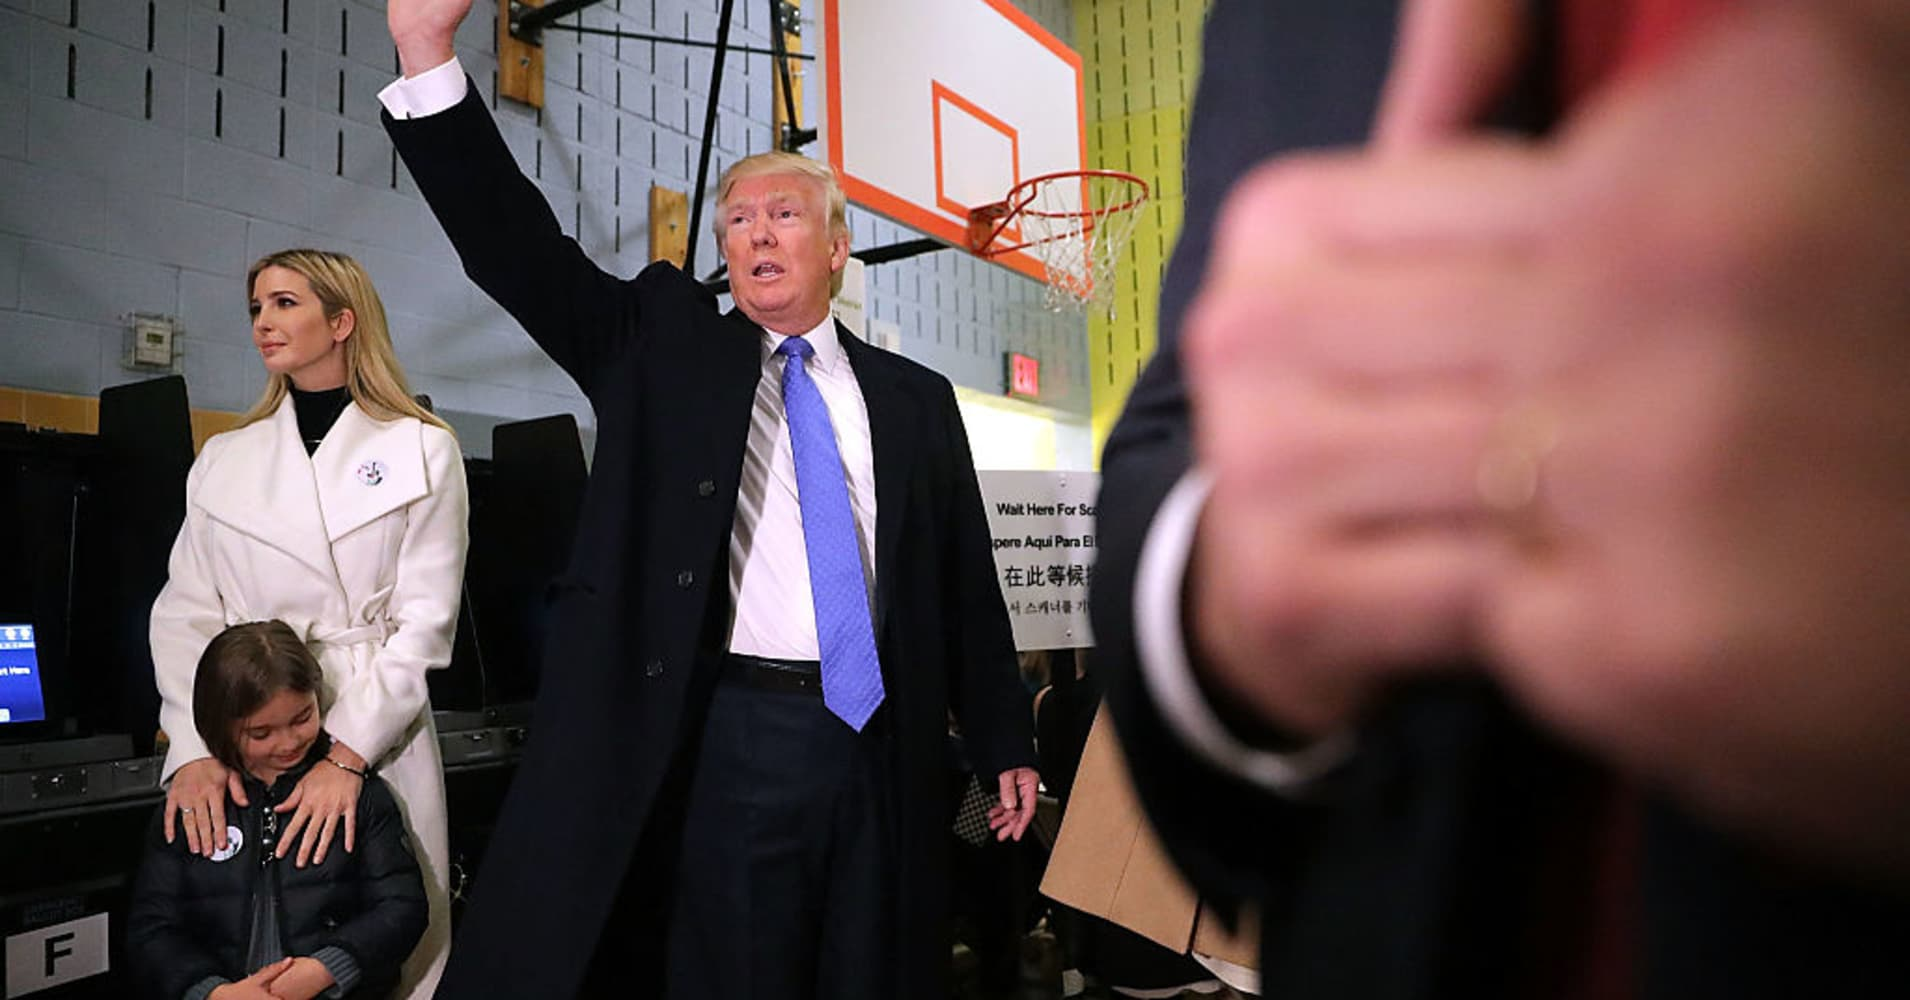 Donald Trump (C) waves after casting his vote with daughter Ivanka Trump (L) and her daughter Arabella Rose Kushner on Election Day at PS 59 November 8, 2016 in New York City.